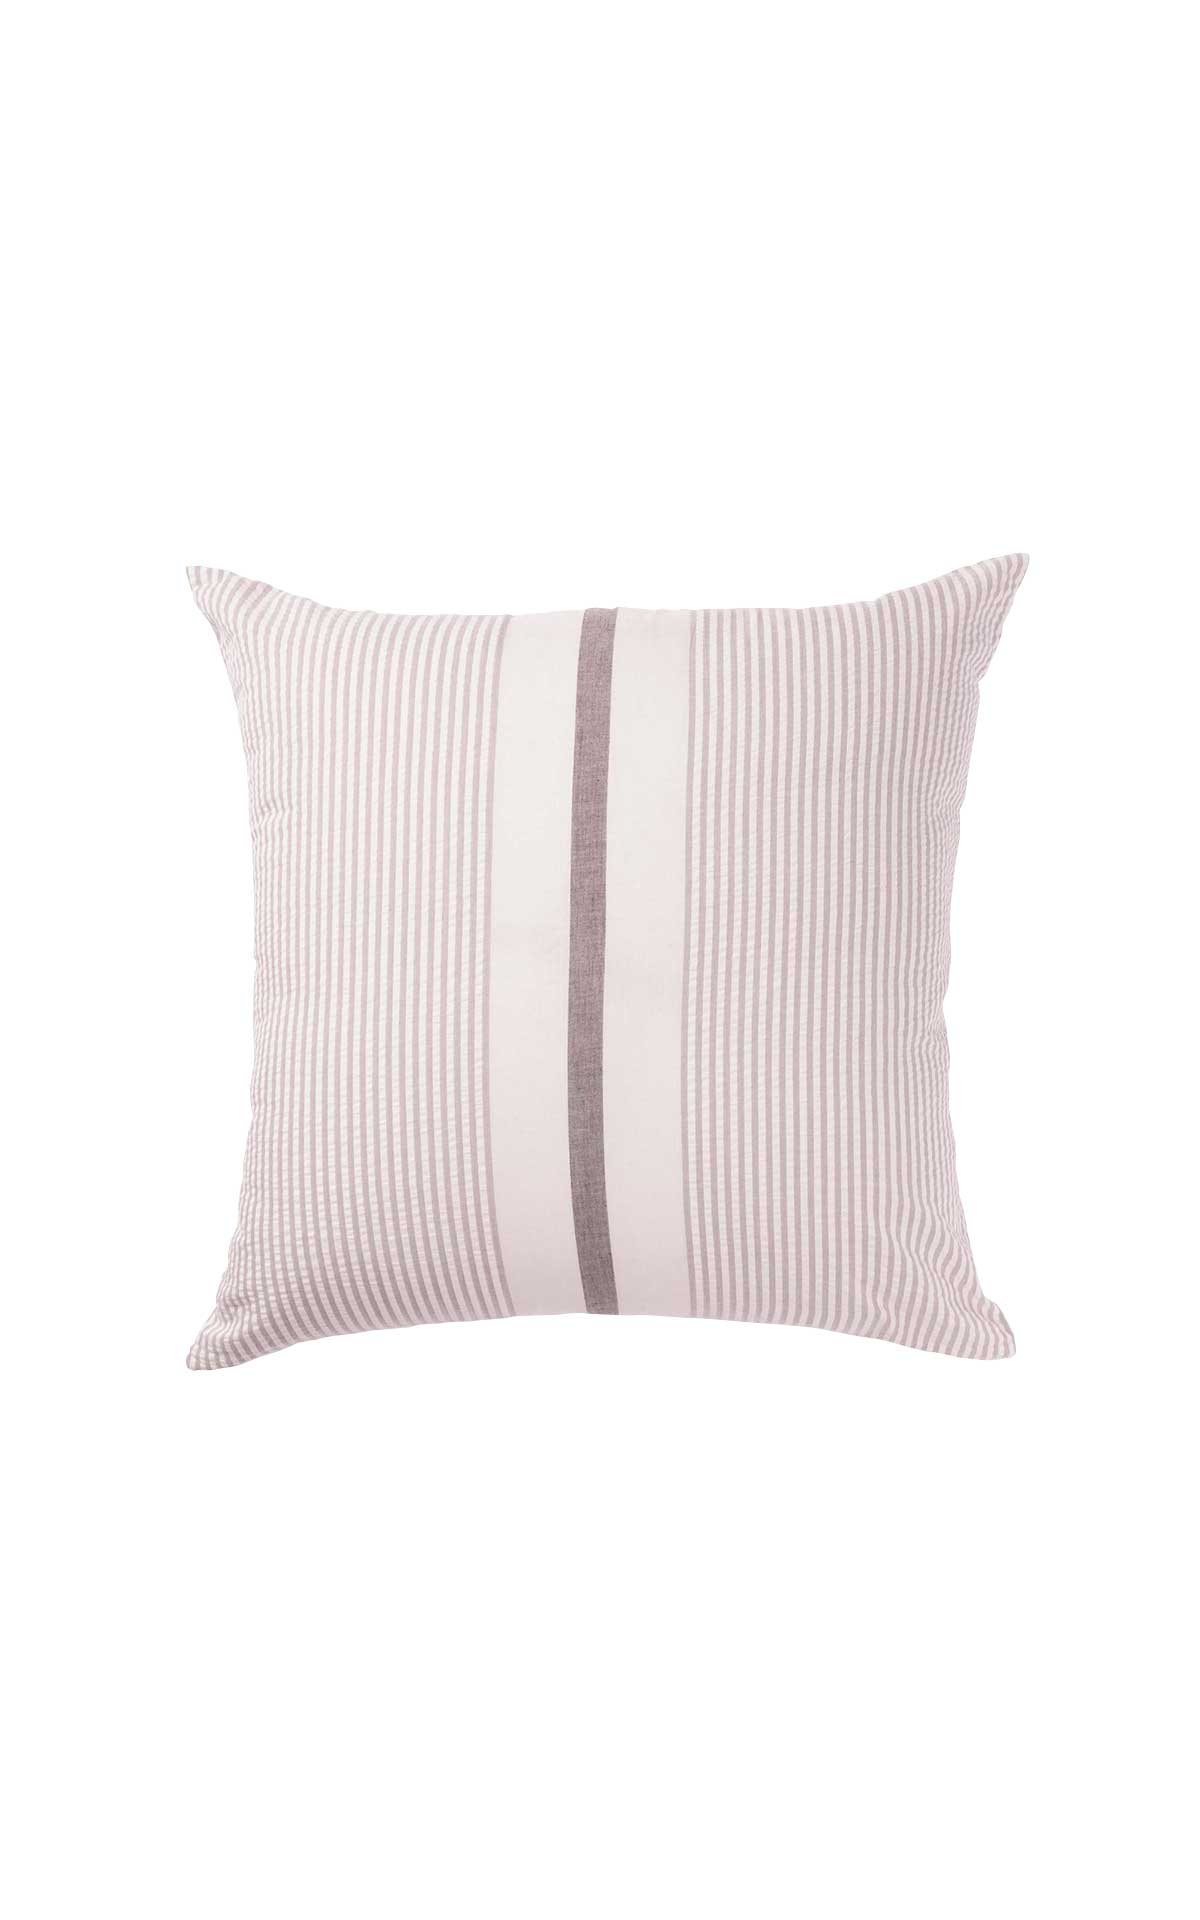 Beige striped cushion cover Textura